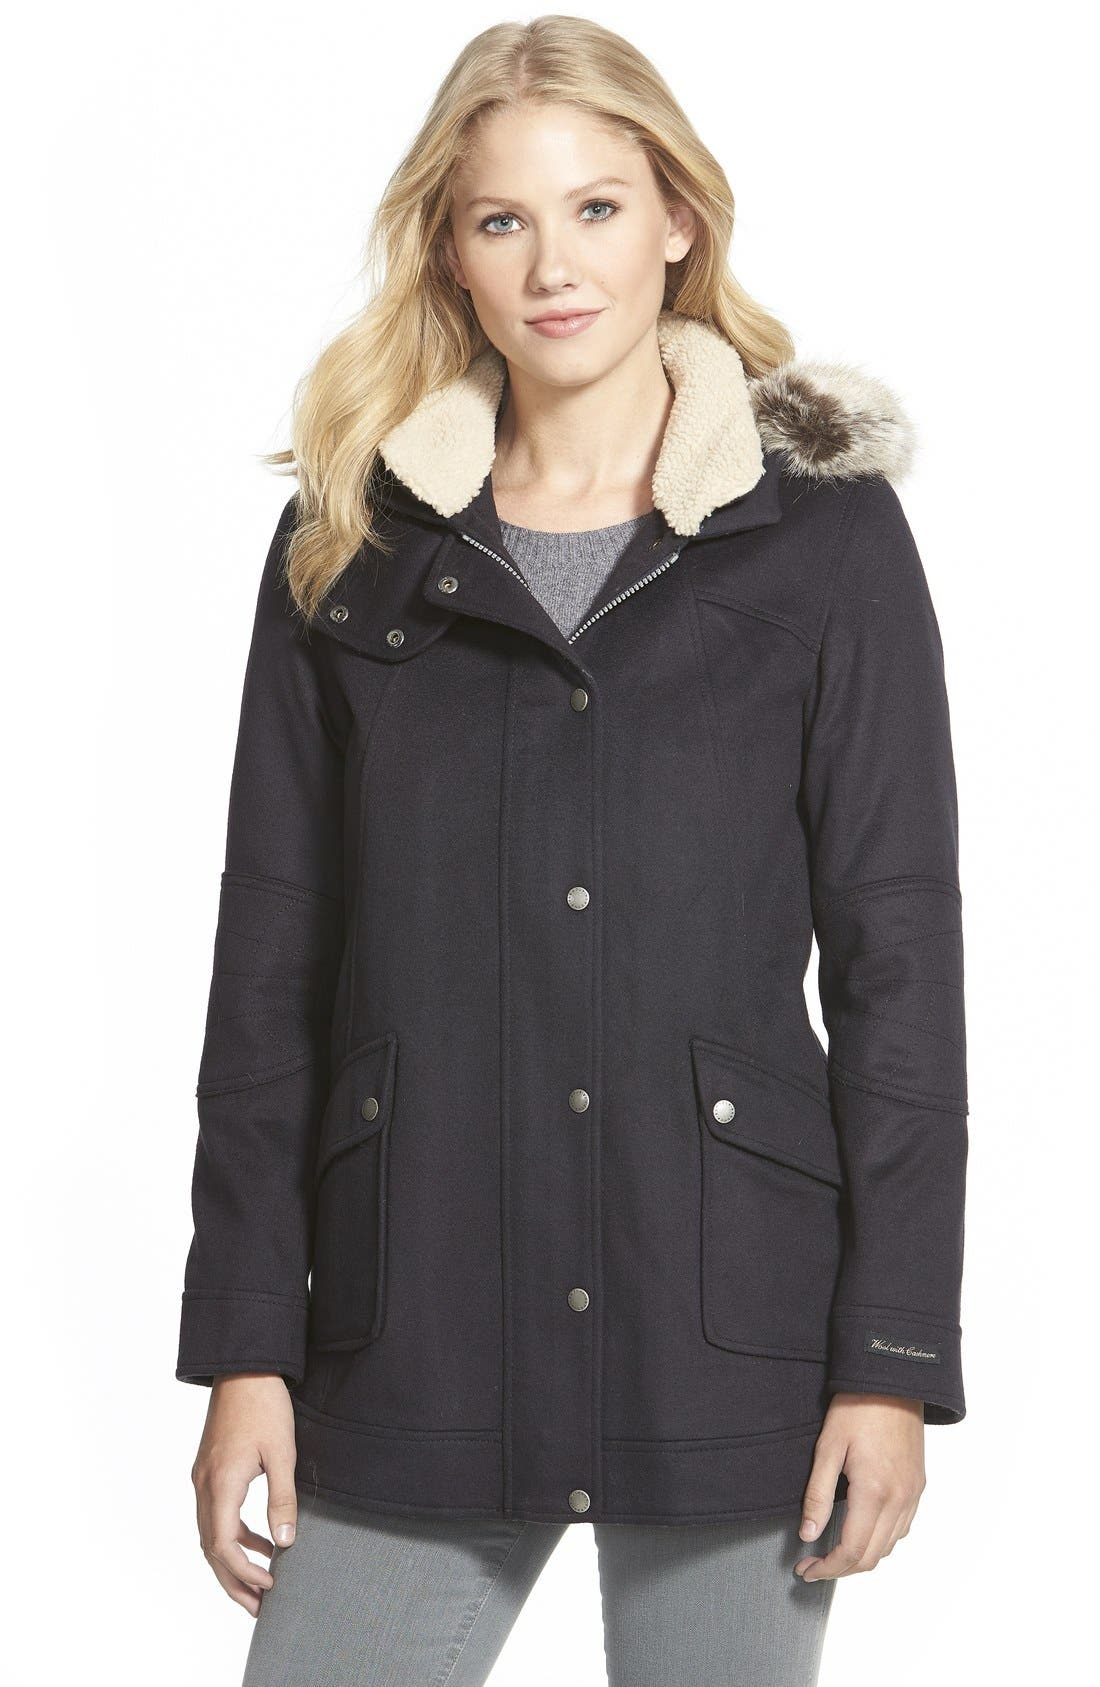 Alternate Image 1 Selected - Barbour 'Carston' Faux Fur Trim Hooded Wool Blend Jacket